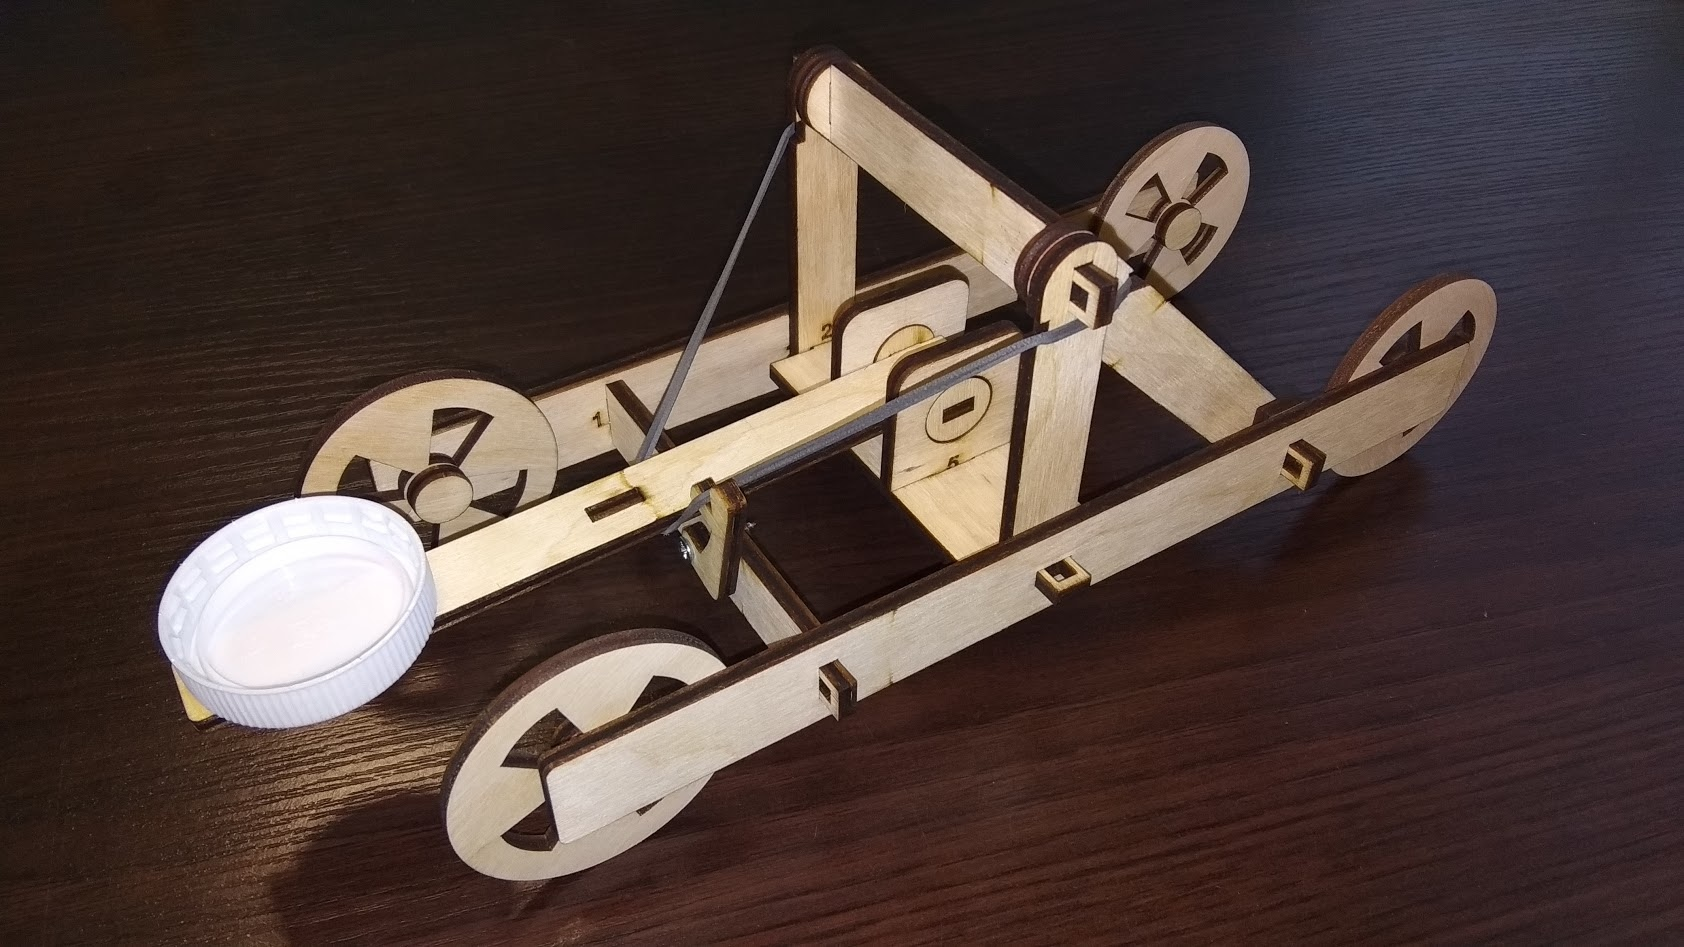 Laser Cut Wooden Toy Catapult Free Vector